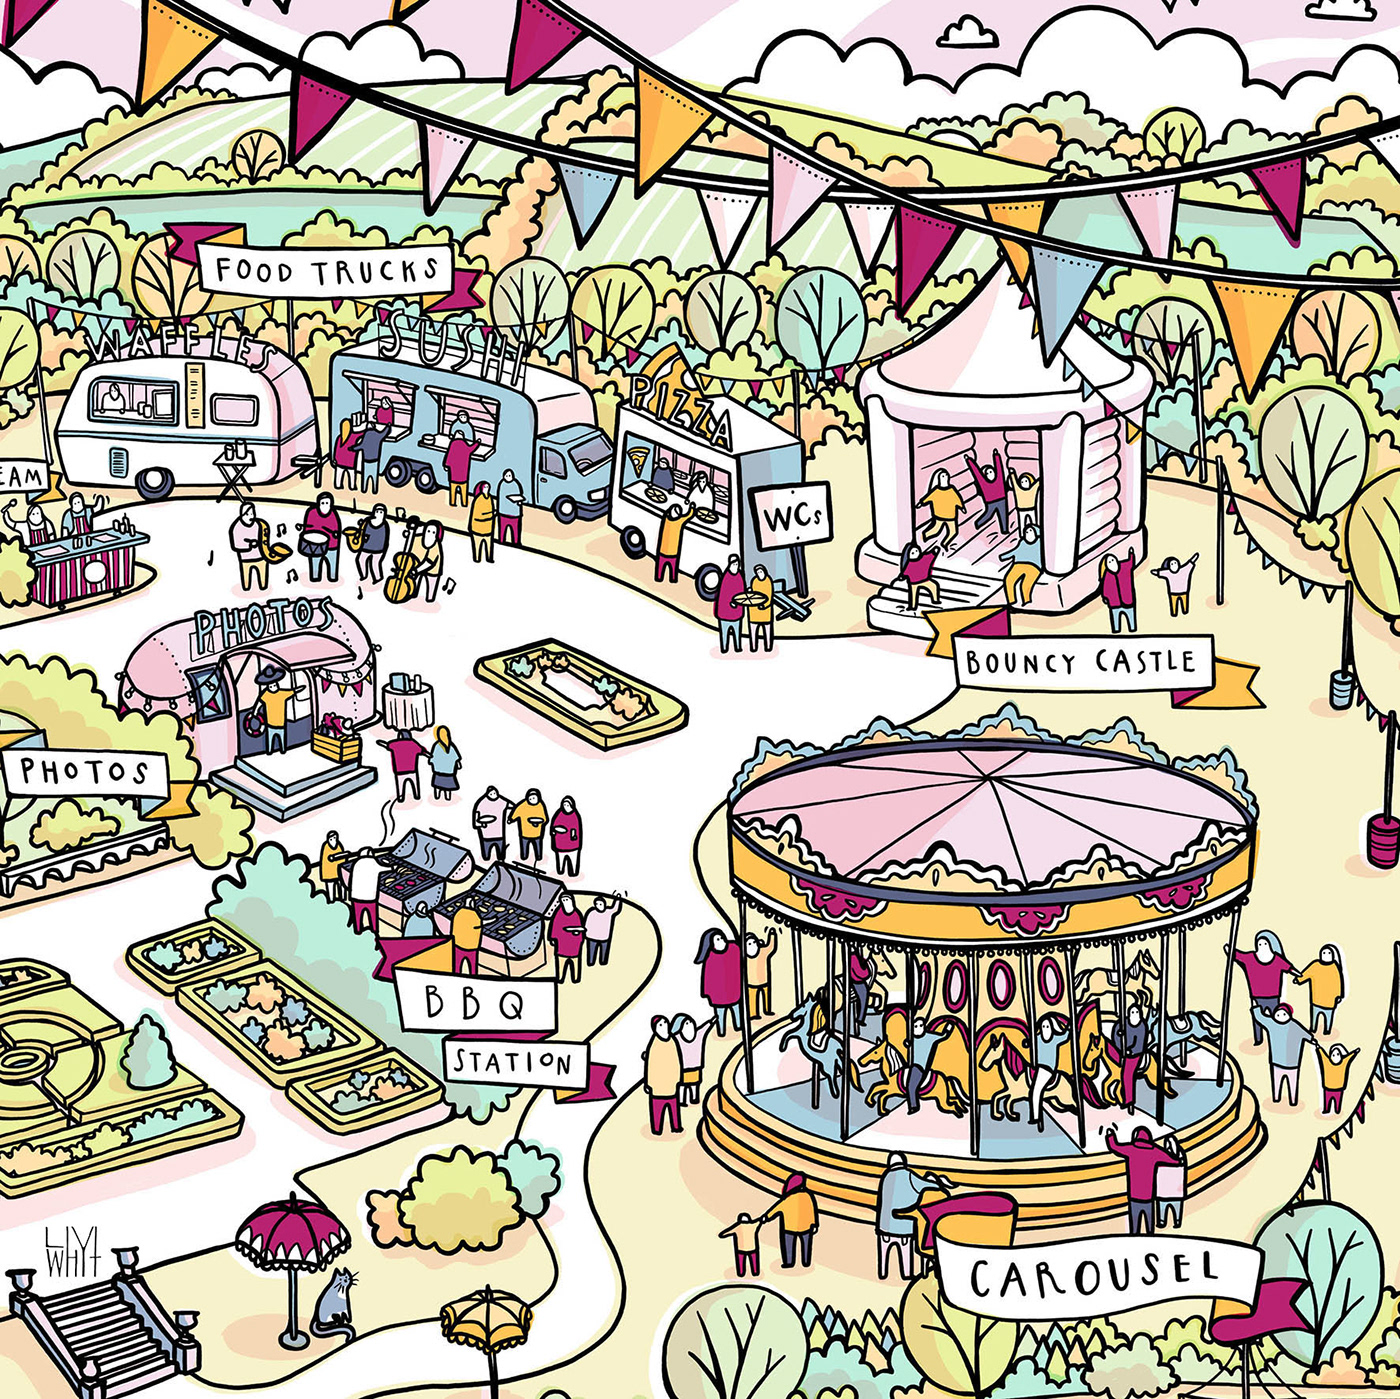 Quintessentially Illustrated Venue Map on Behance.